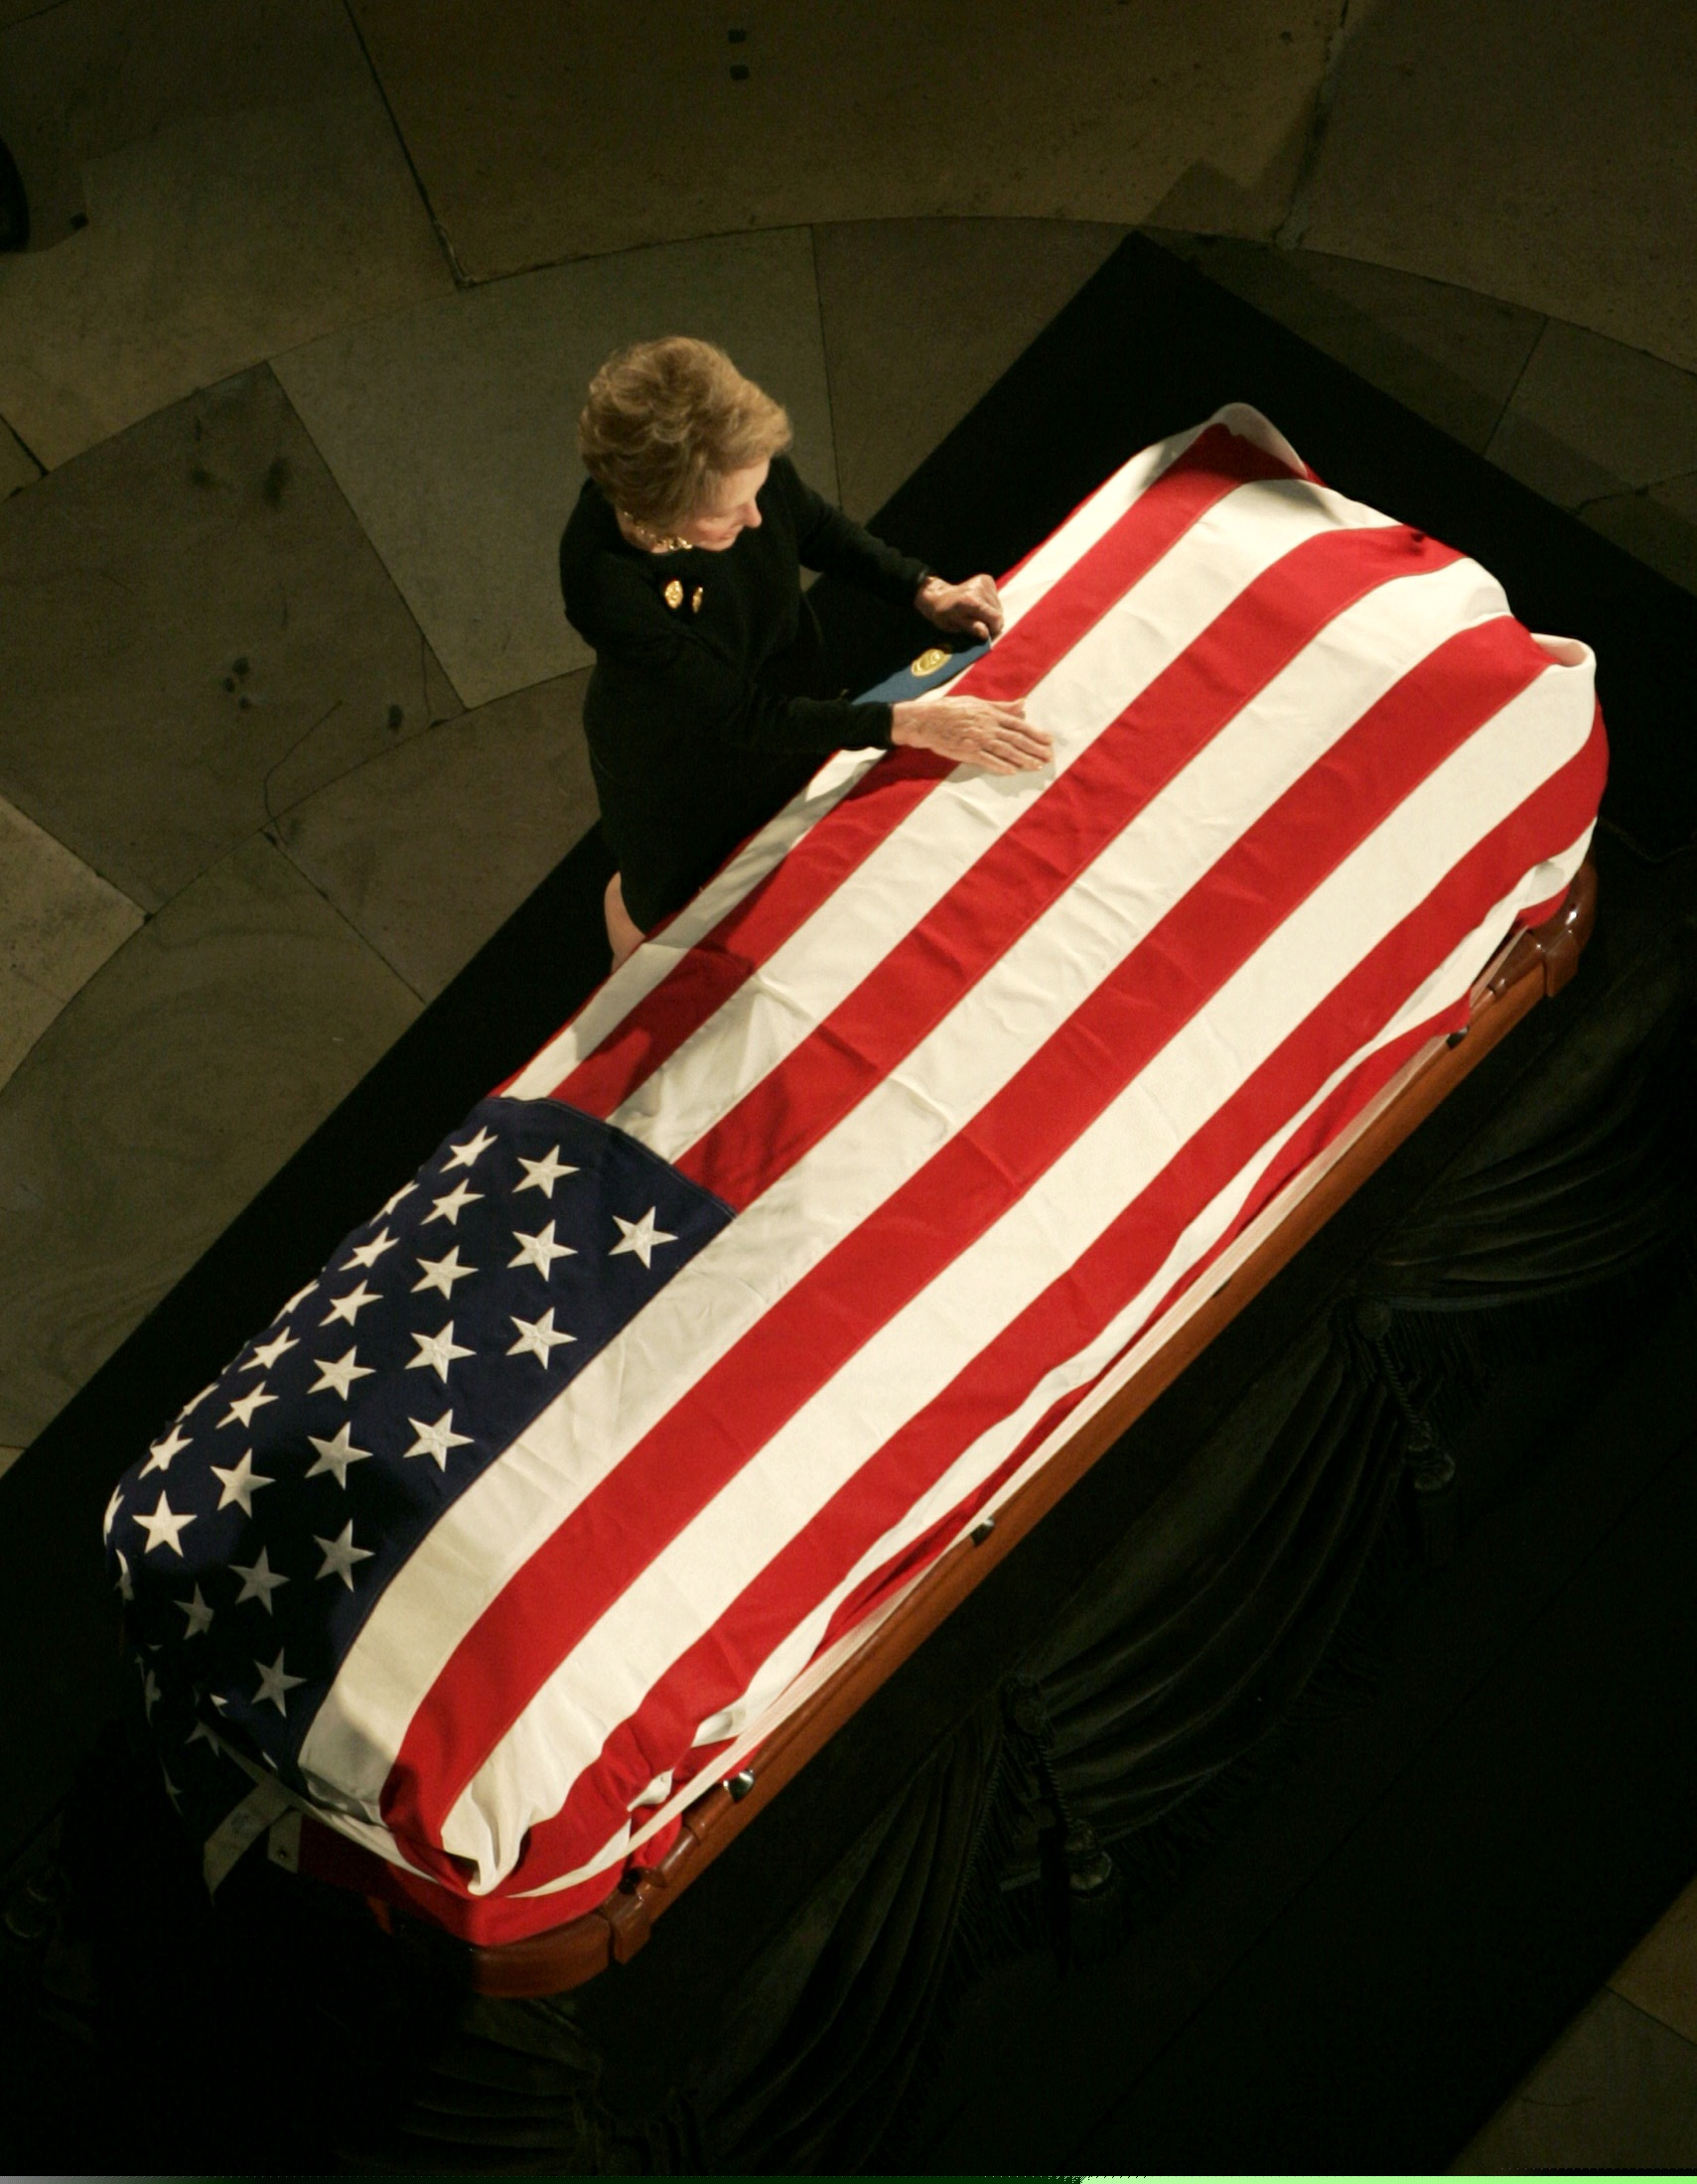 The Funeral                                                              Upon Ronald Reagan's death in 2004, Nancy led the nation in mourning, as she orchestrated a seven-day state funeral that saw her: attend a memorial service at the Reagan Library; witness her husband's body laying in state in the Capitol; attend a service at the National Cathedral where she had invited George H. W. Bush, Margaret Thatcher and Brian Mulroney to speak; stood gravesite at Reagan's final resting place on their ranch, where she finally allowed to herself to cry in public.